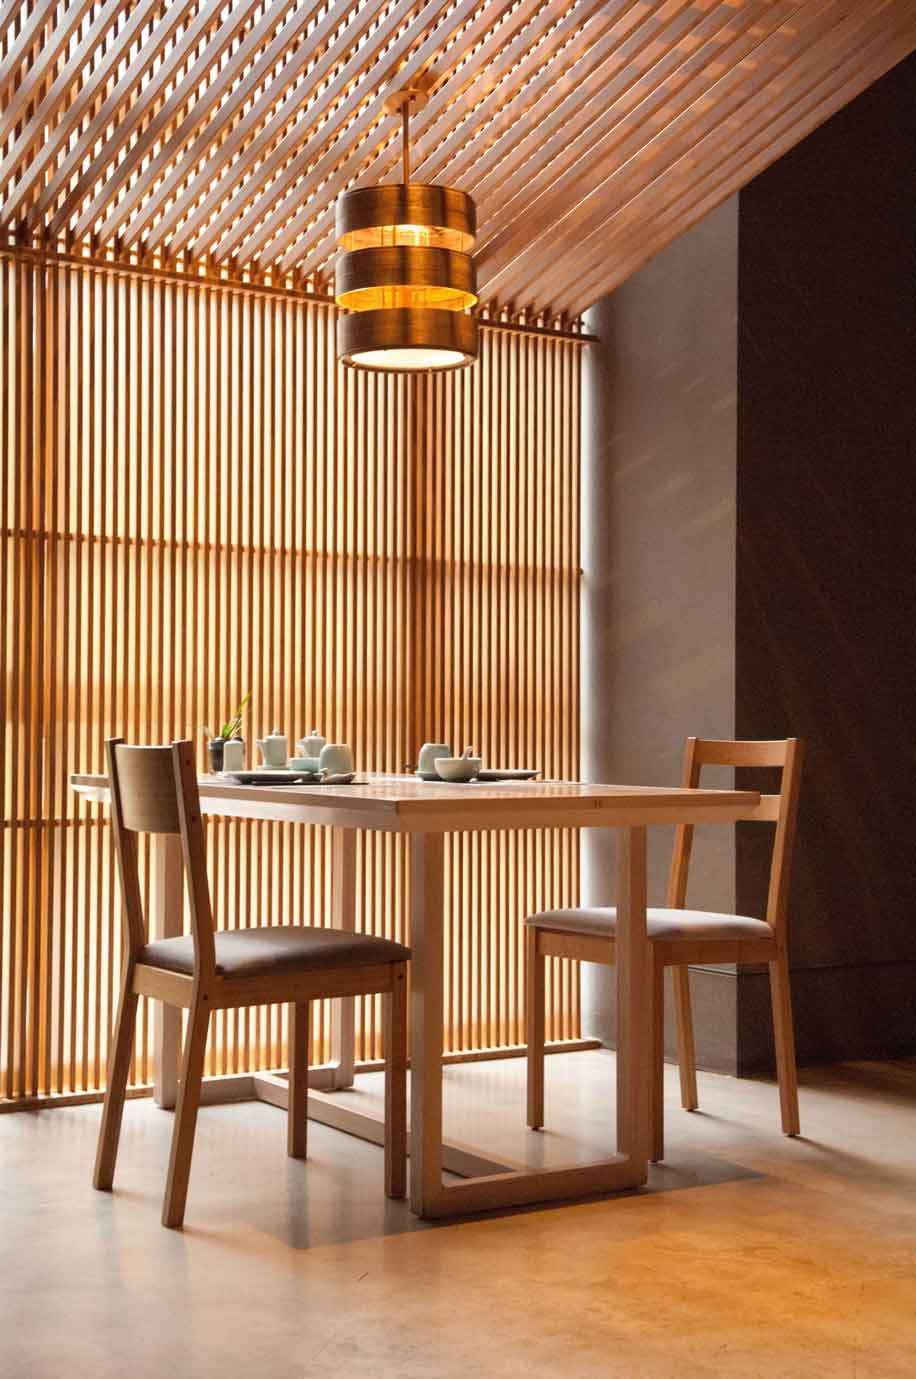 dasso.Furnishings Bamboo Room Divider